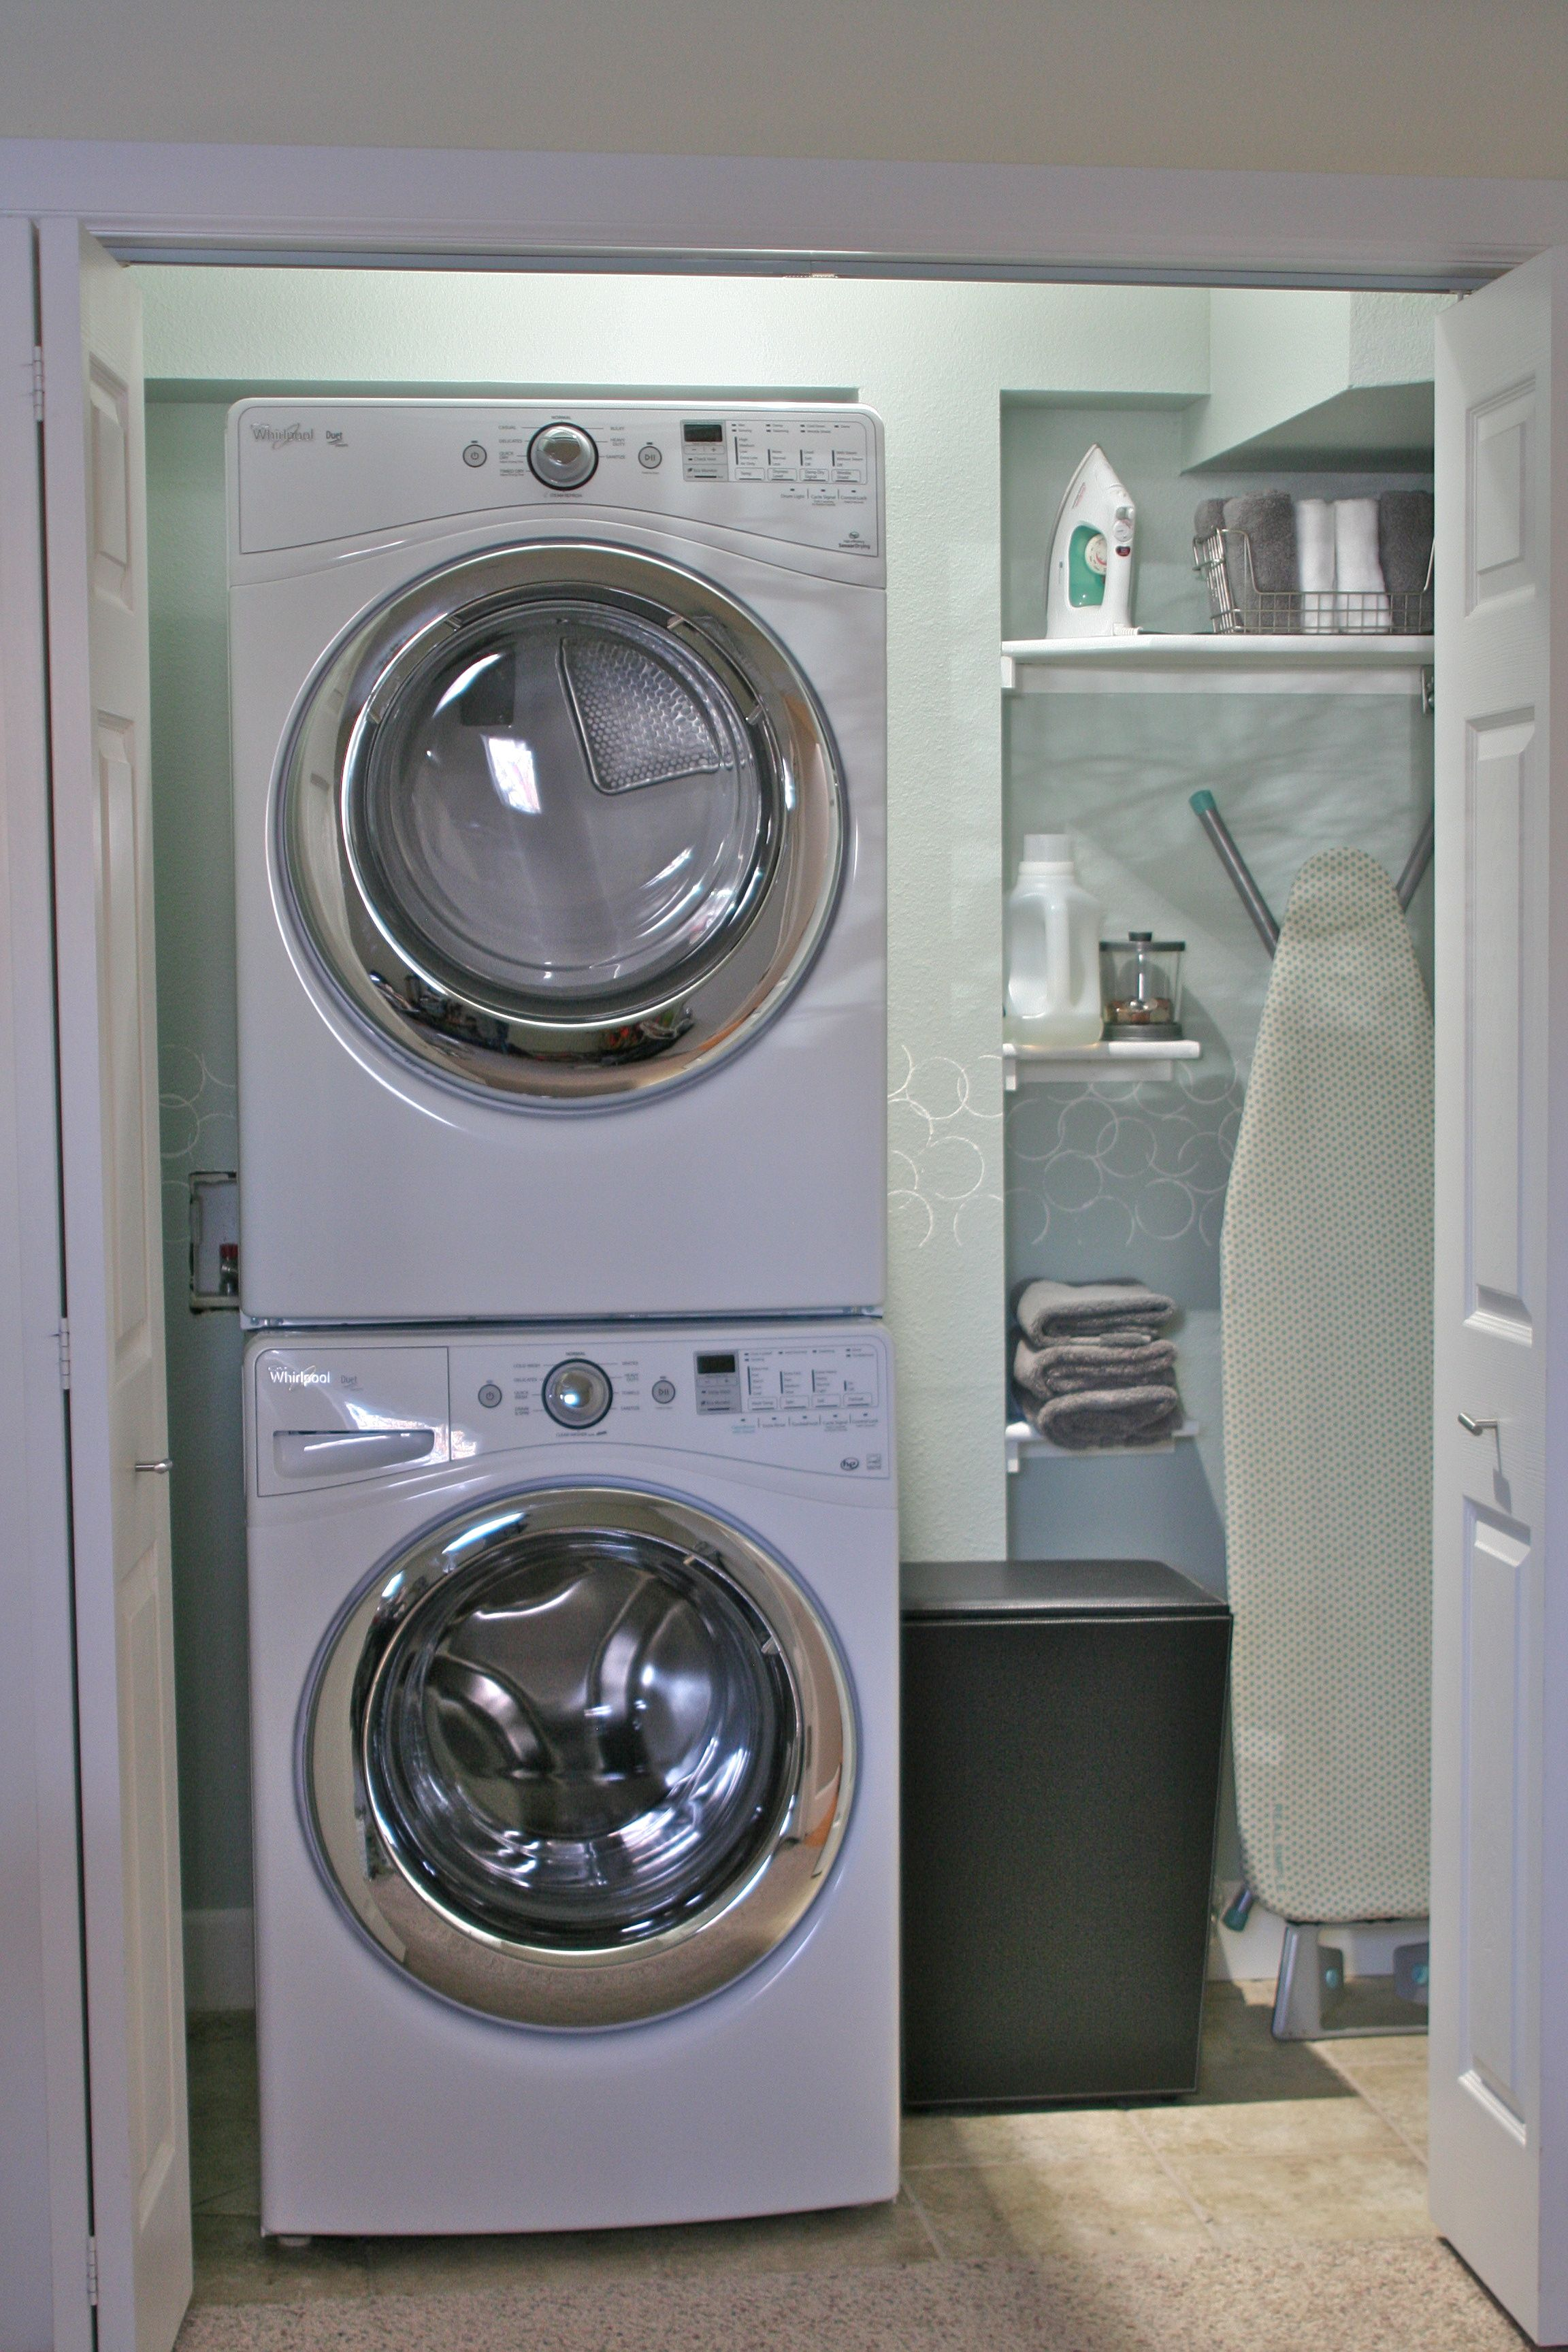 Color and bubbles using tp roll laundry room makeover stackable washer and dryer home ideas - Washer dryers for small spaces ideas ...